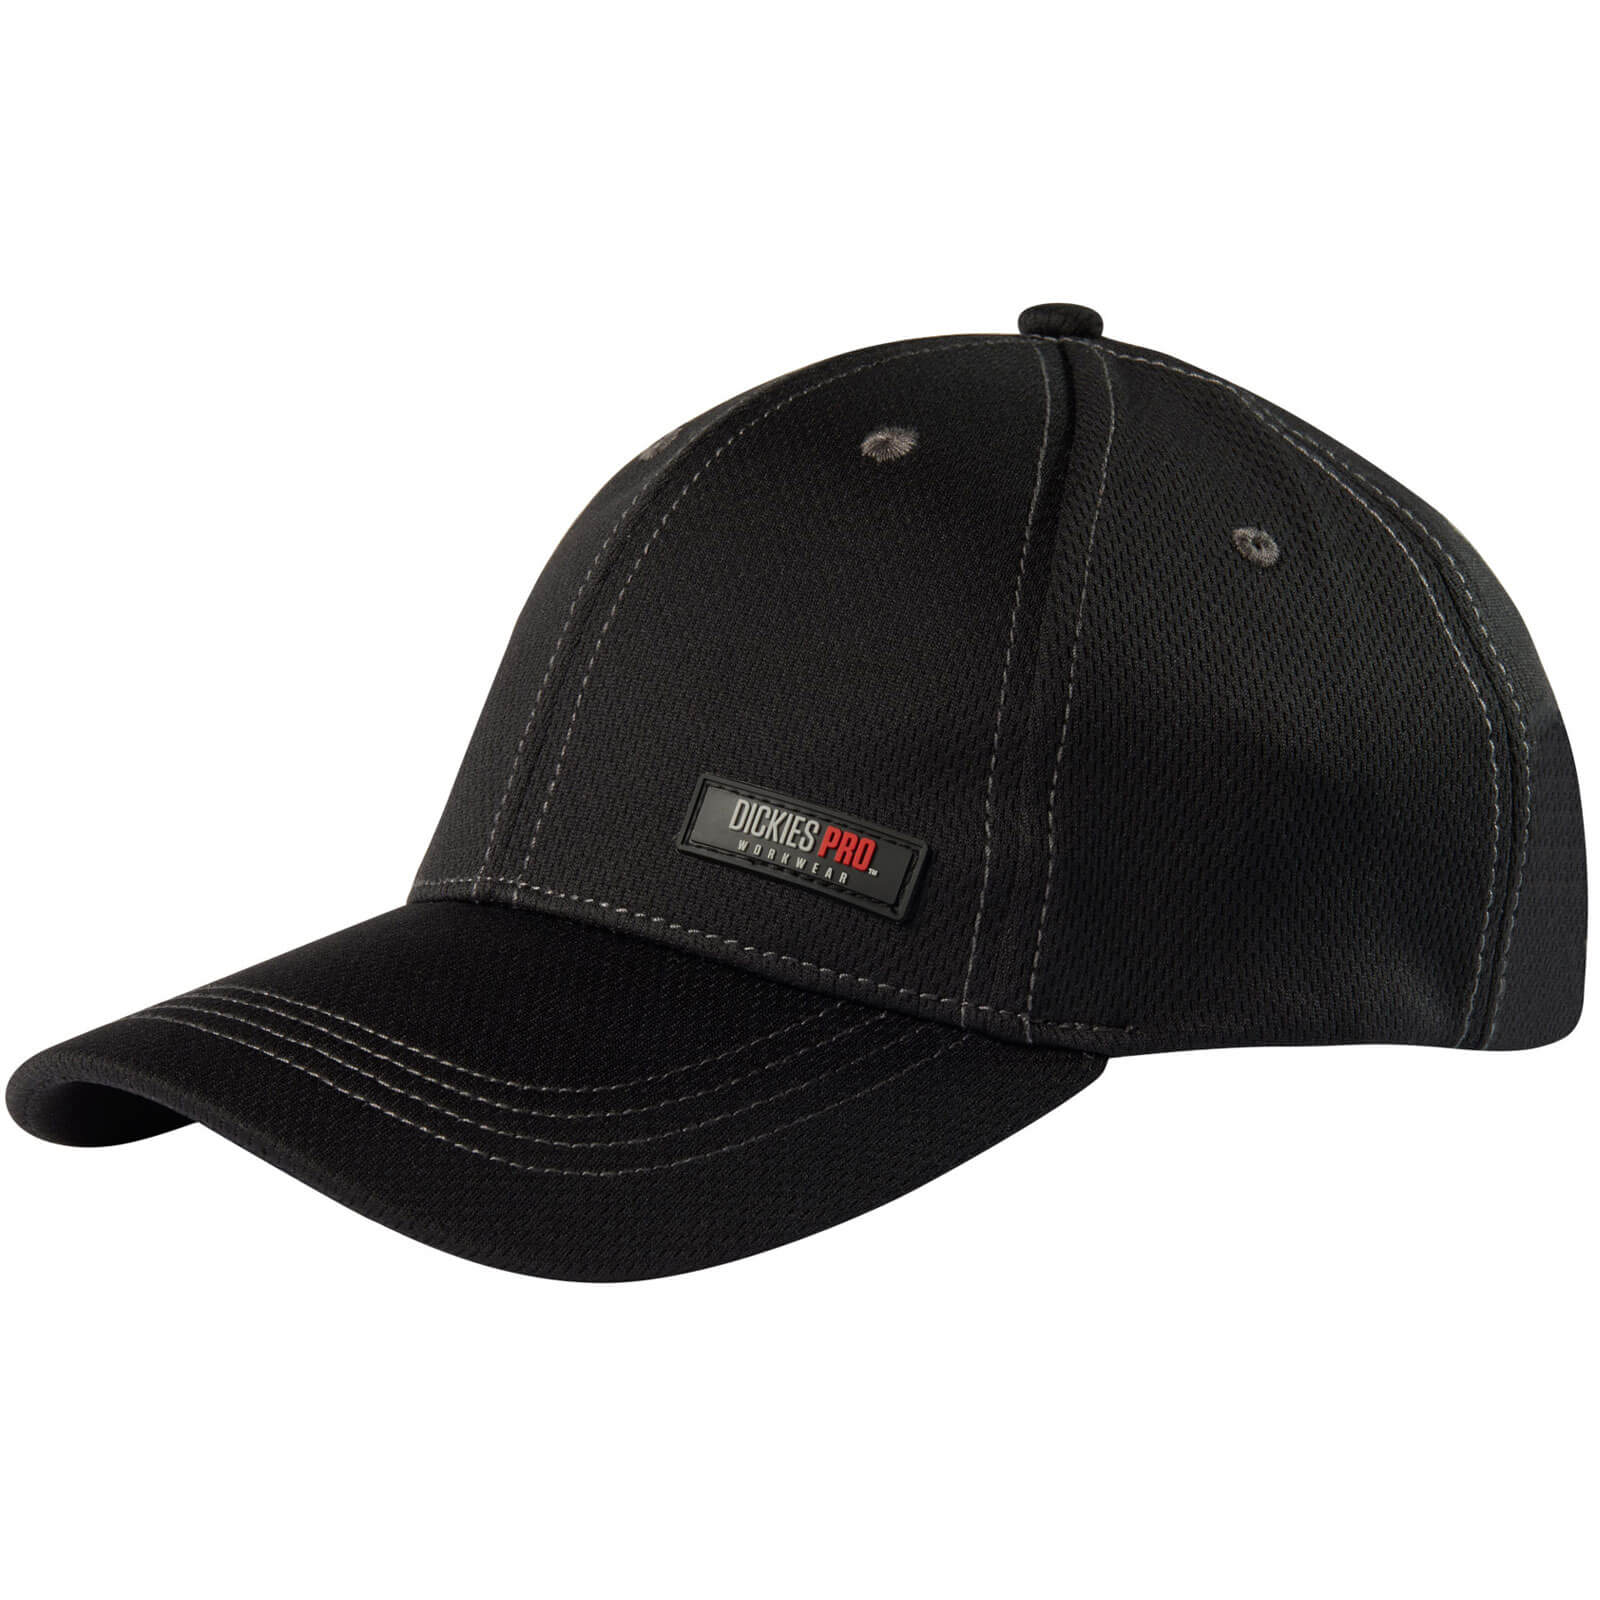 Image of Dickies Pro Cap Black One Size